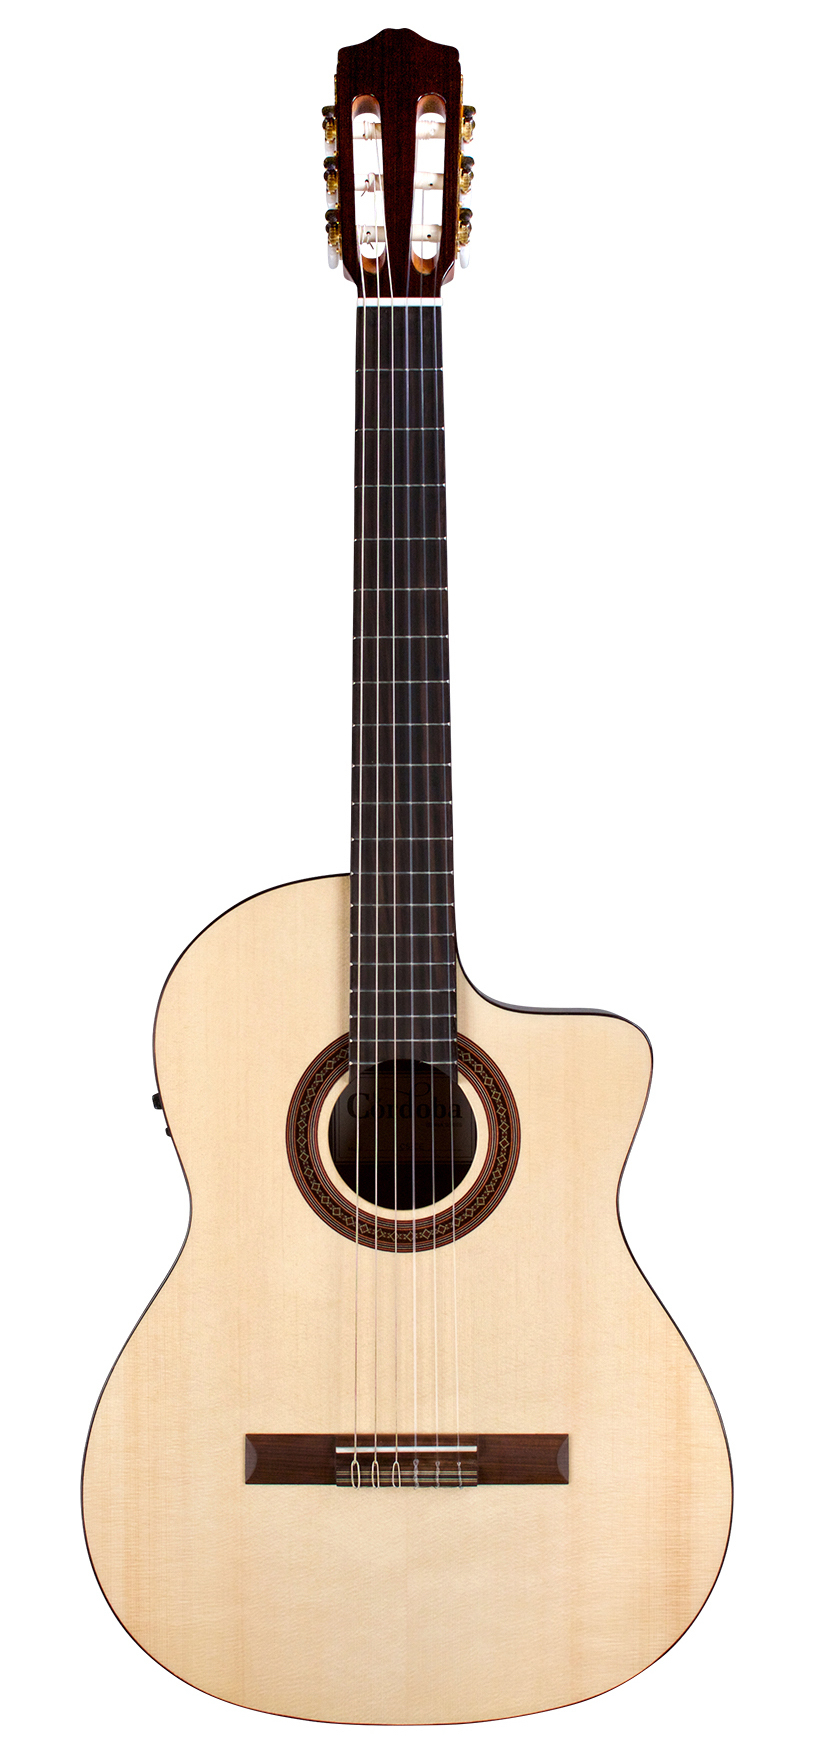 Cordoba C5-CE Spruce - Solid Englemann Spruce top, Mahogany back/sides, 650mm Scale Length, Fishman Electronics 00293